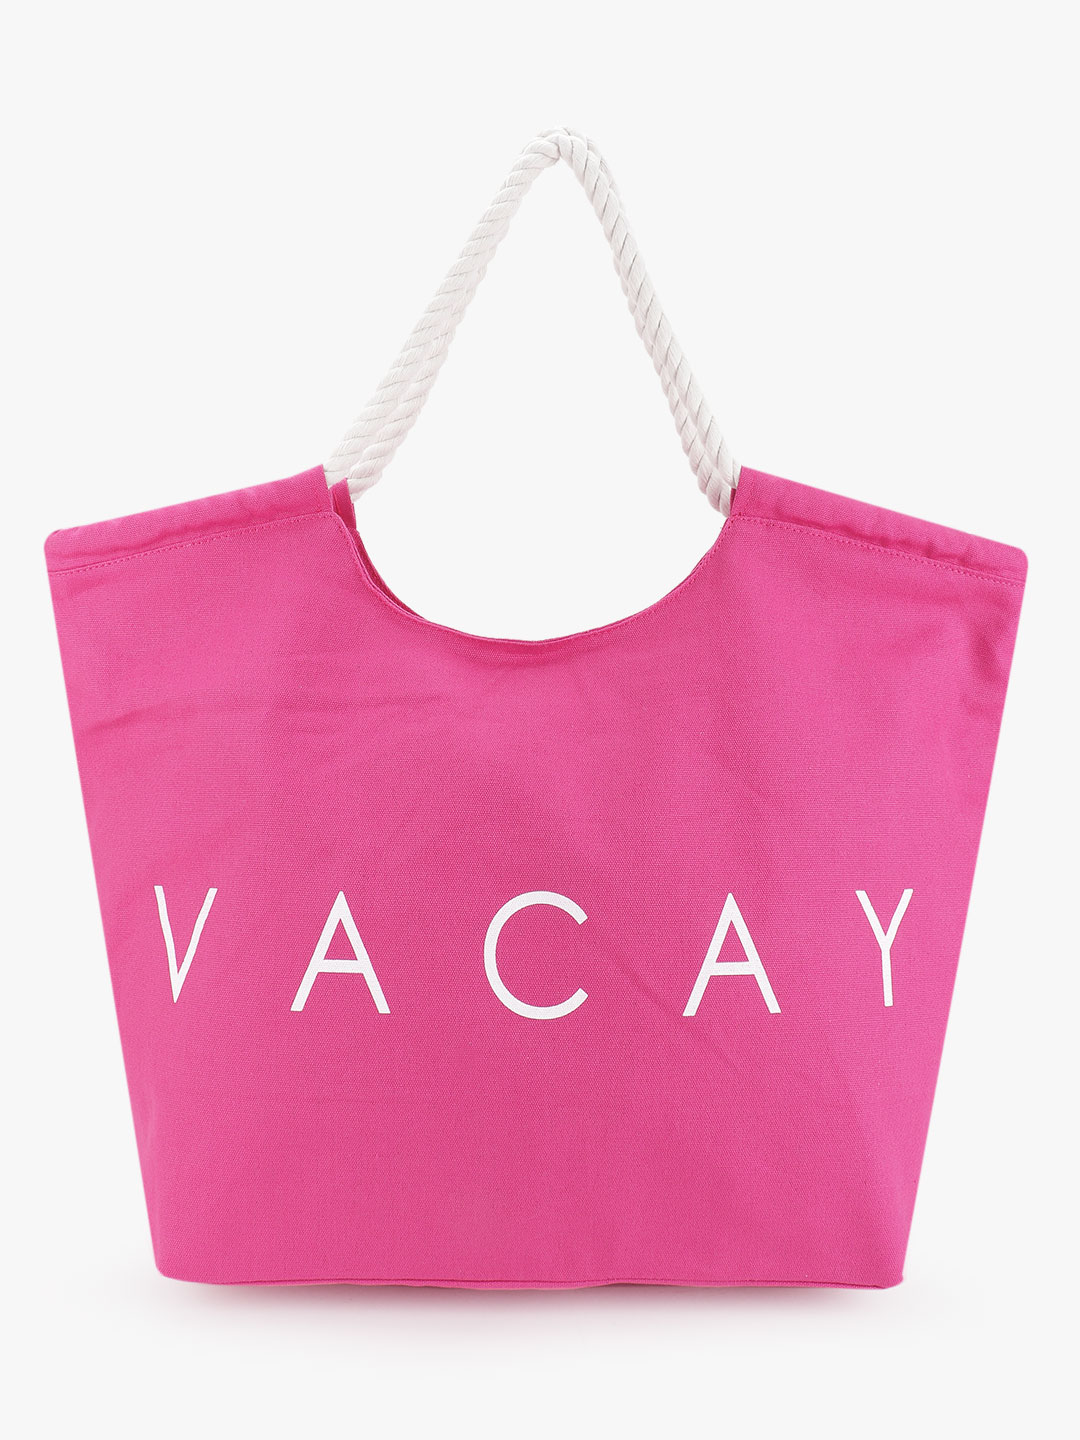 South Beach Pink Vacay Print Tote Bag 1